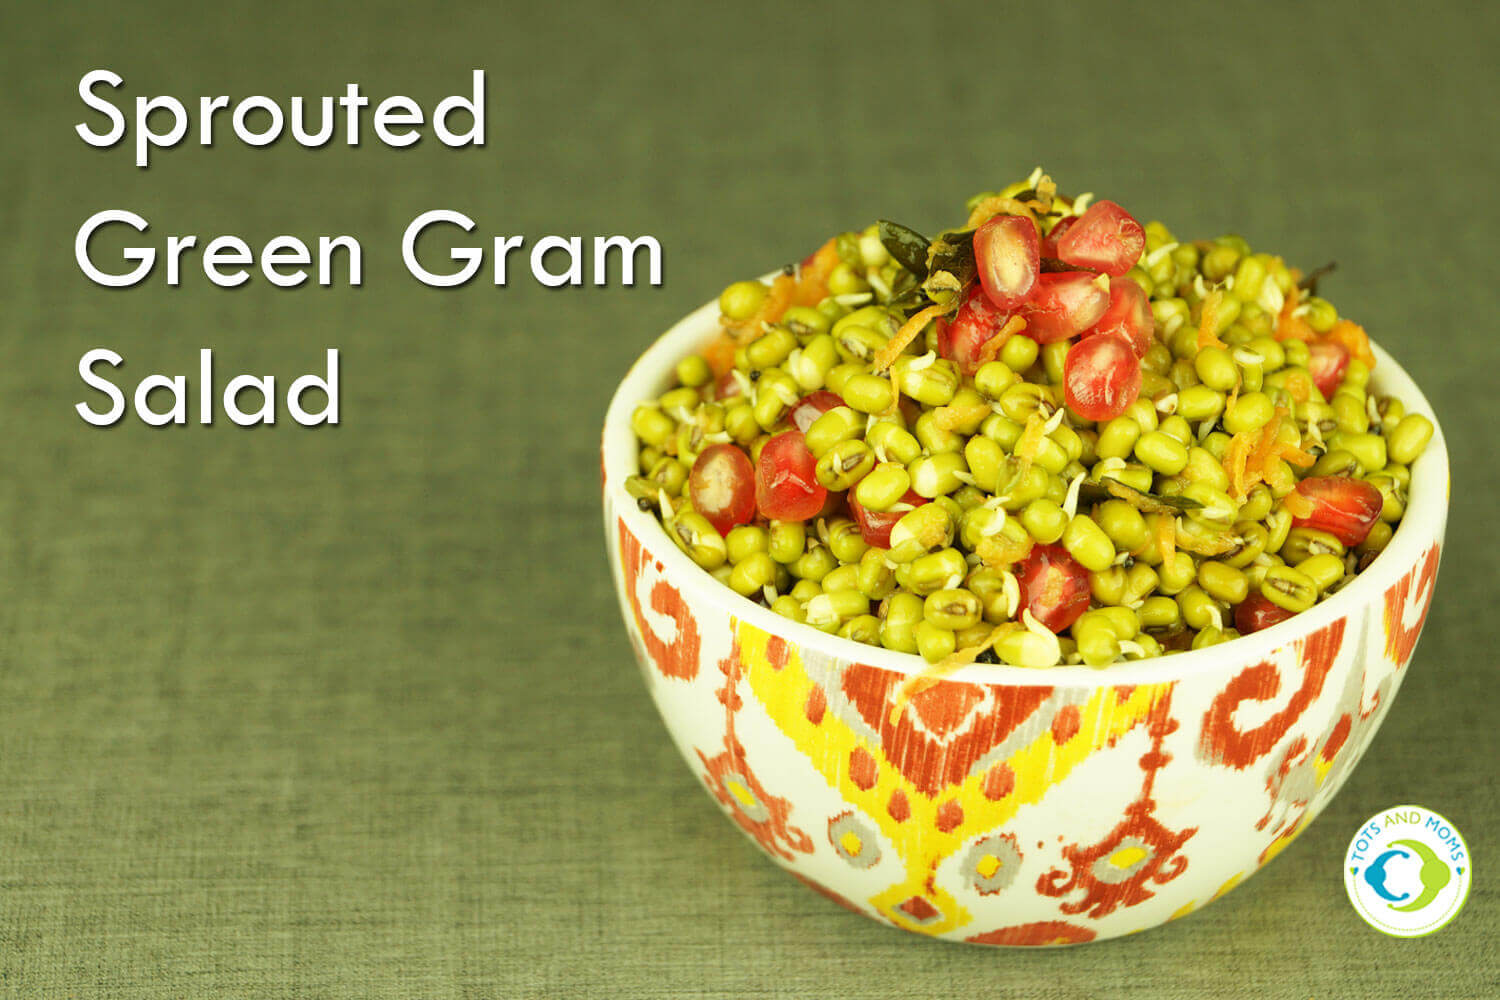 SPROUTED GREEN GRAM SALAD for Toddlers, Kids & Family Easy snacks for moms and family